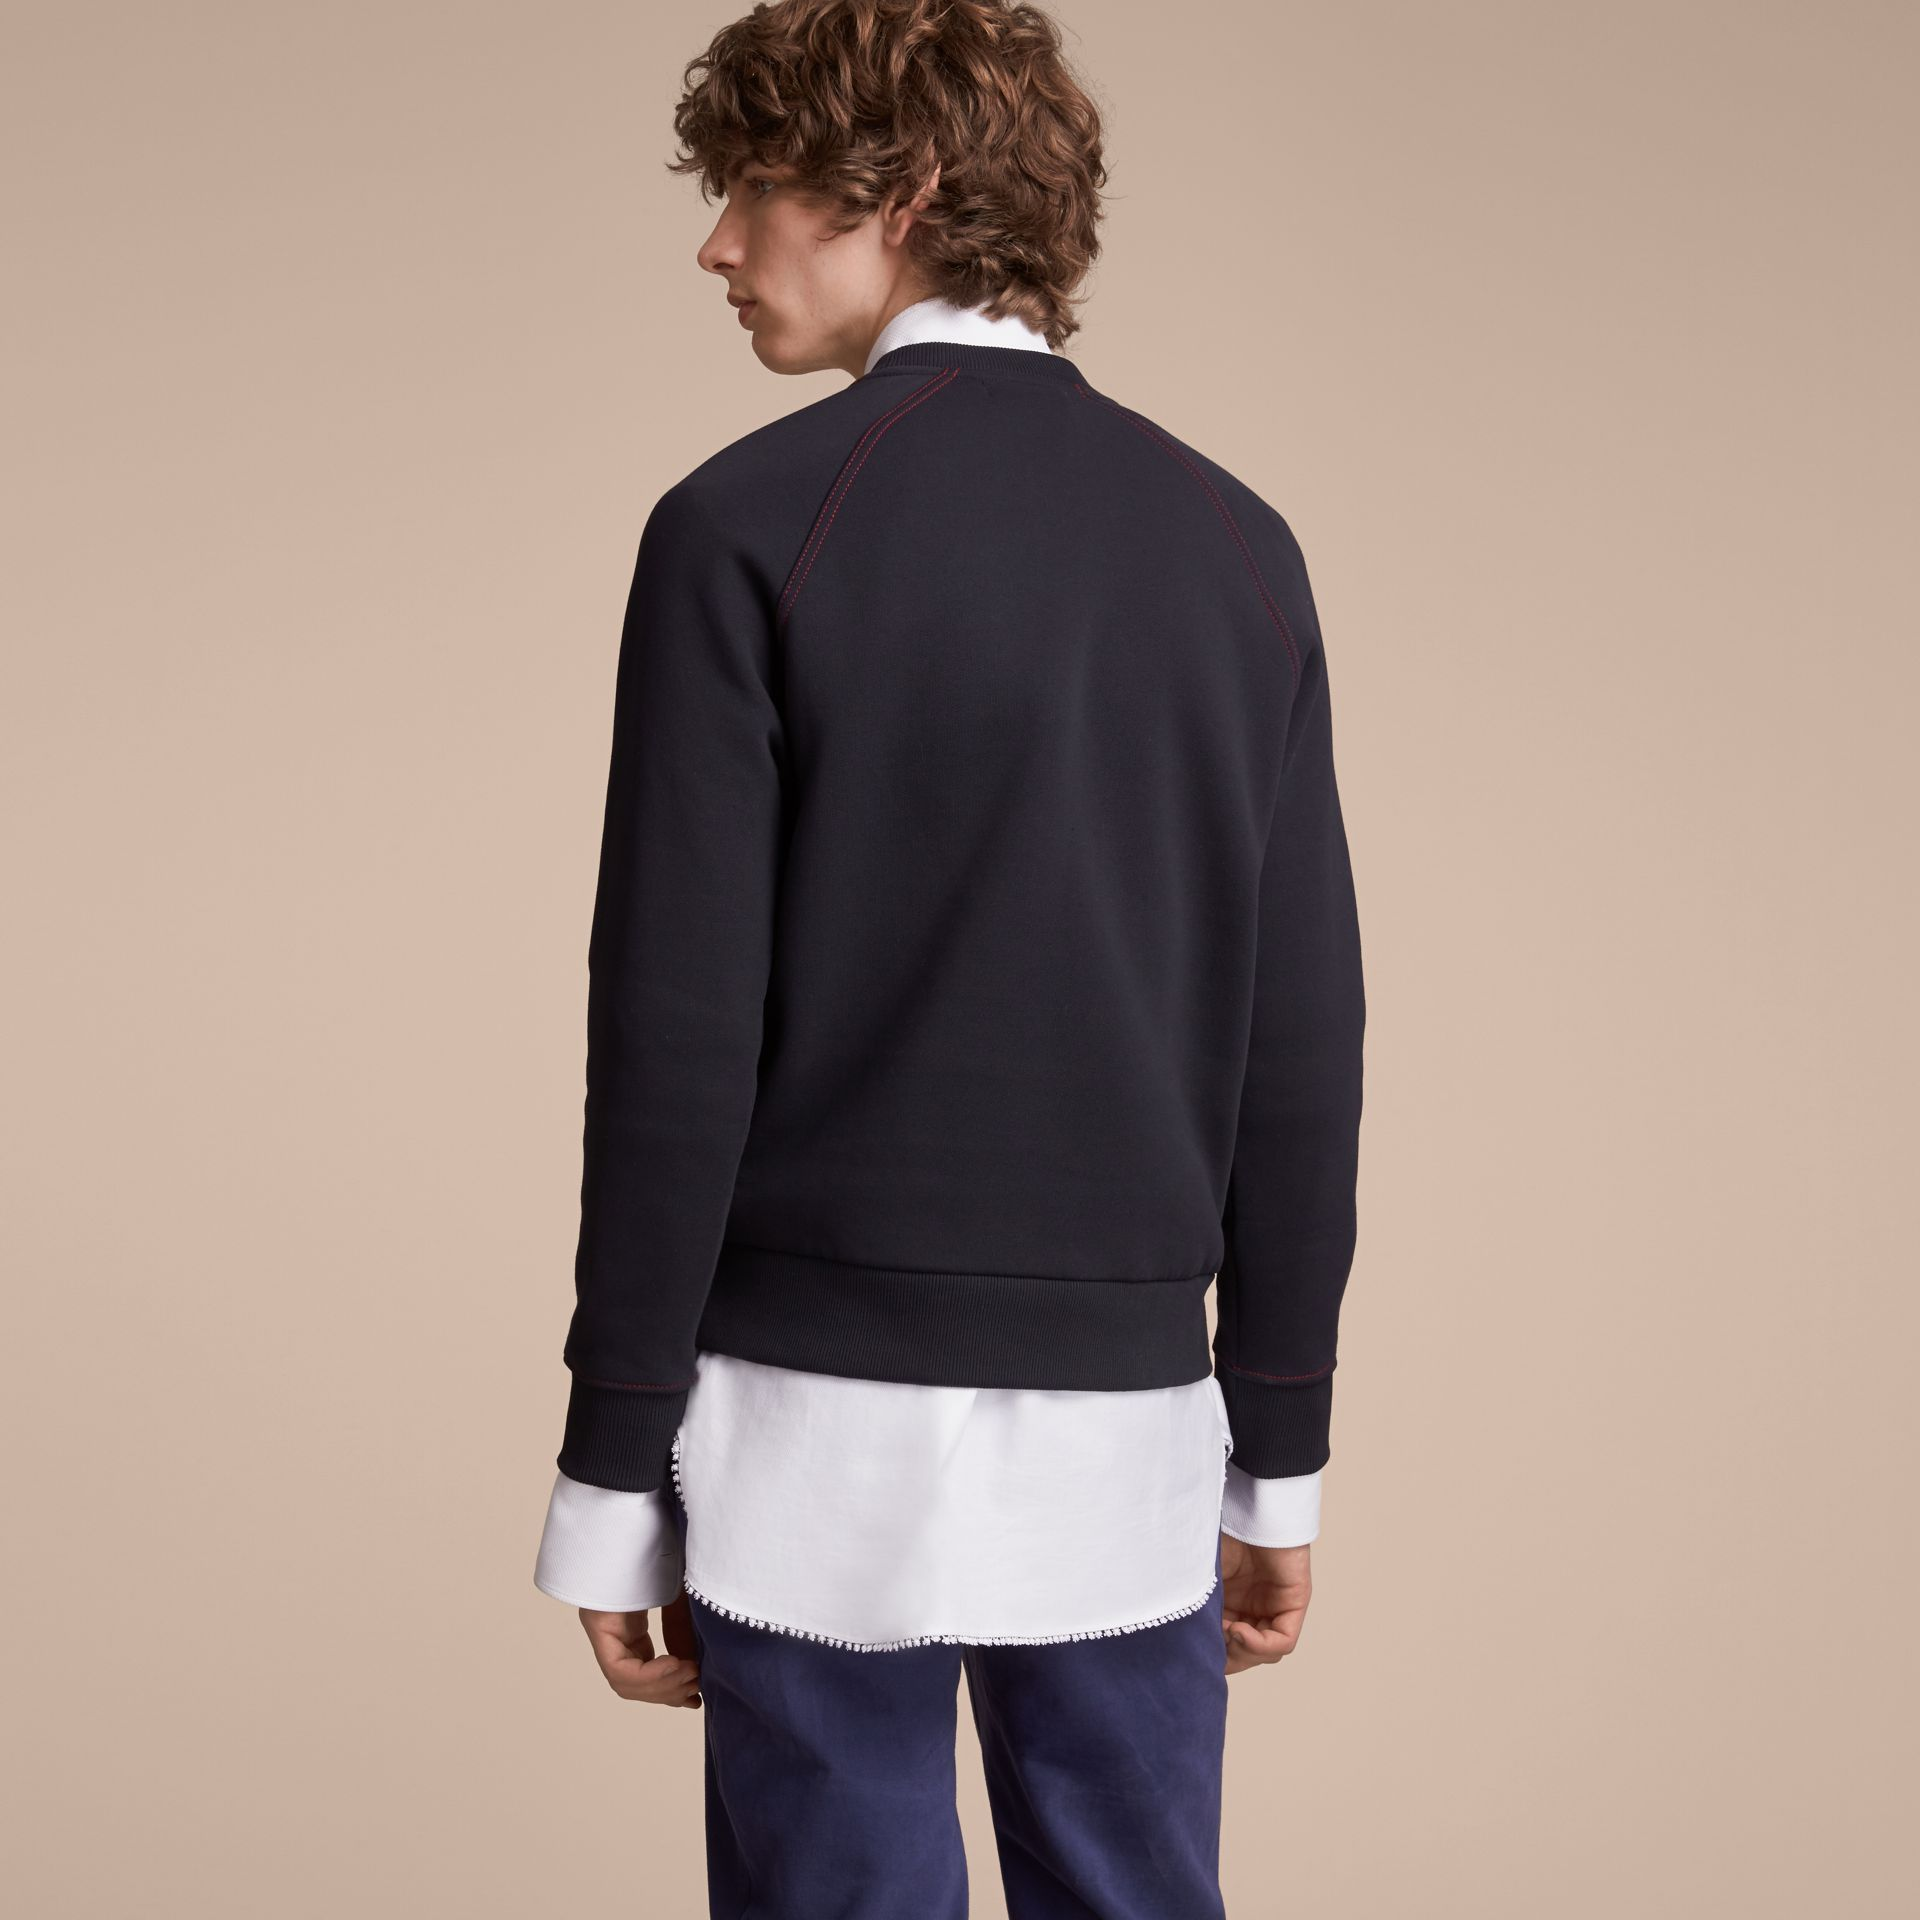 Embroidered Jersey Sweatshirt in Navy - Men | Burberry Australia - gallery image 3